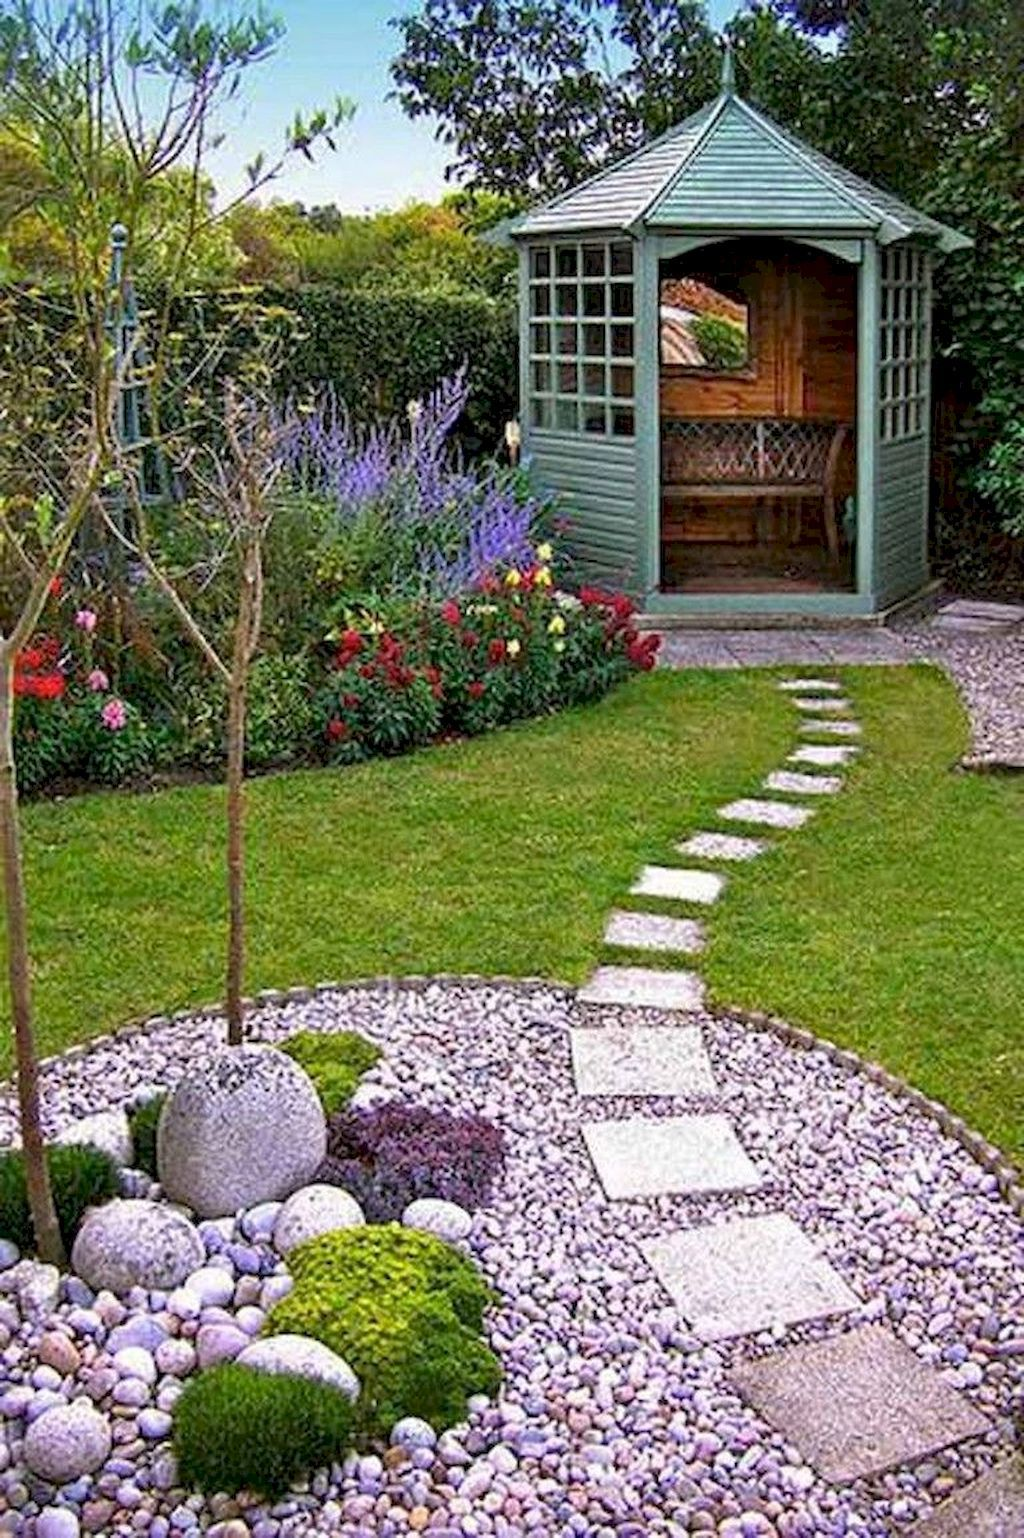 65 Stunning Front Yard Pathways Landscaping Ideas is part of Small backyard landscaping, Diy backyard landscaping, Pathway landscaping, Backyard landscaping designs, Front yard garden, Walkway landscaping - A front yard walkway creates a defined path that provides visual interest and accents your home's entrance  A walkway also prevents worn paths through your yard, helps to keep dirt from being tracked indoors and avoids muddy shoes during rainy… Continue Reading →